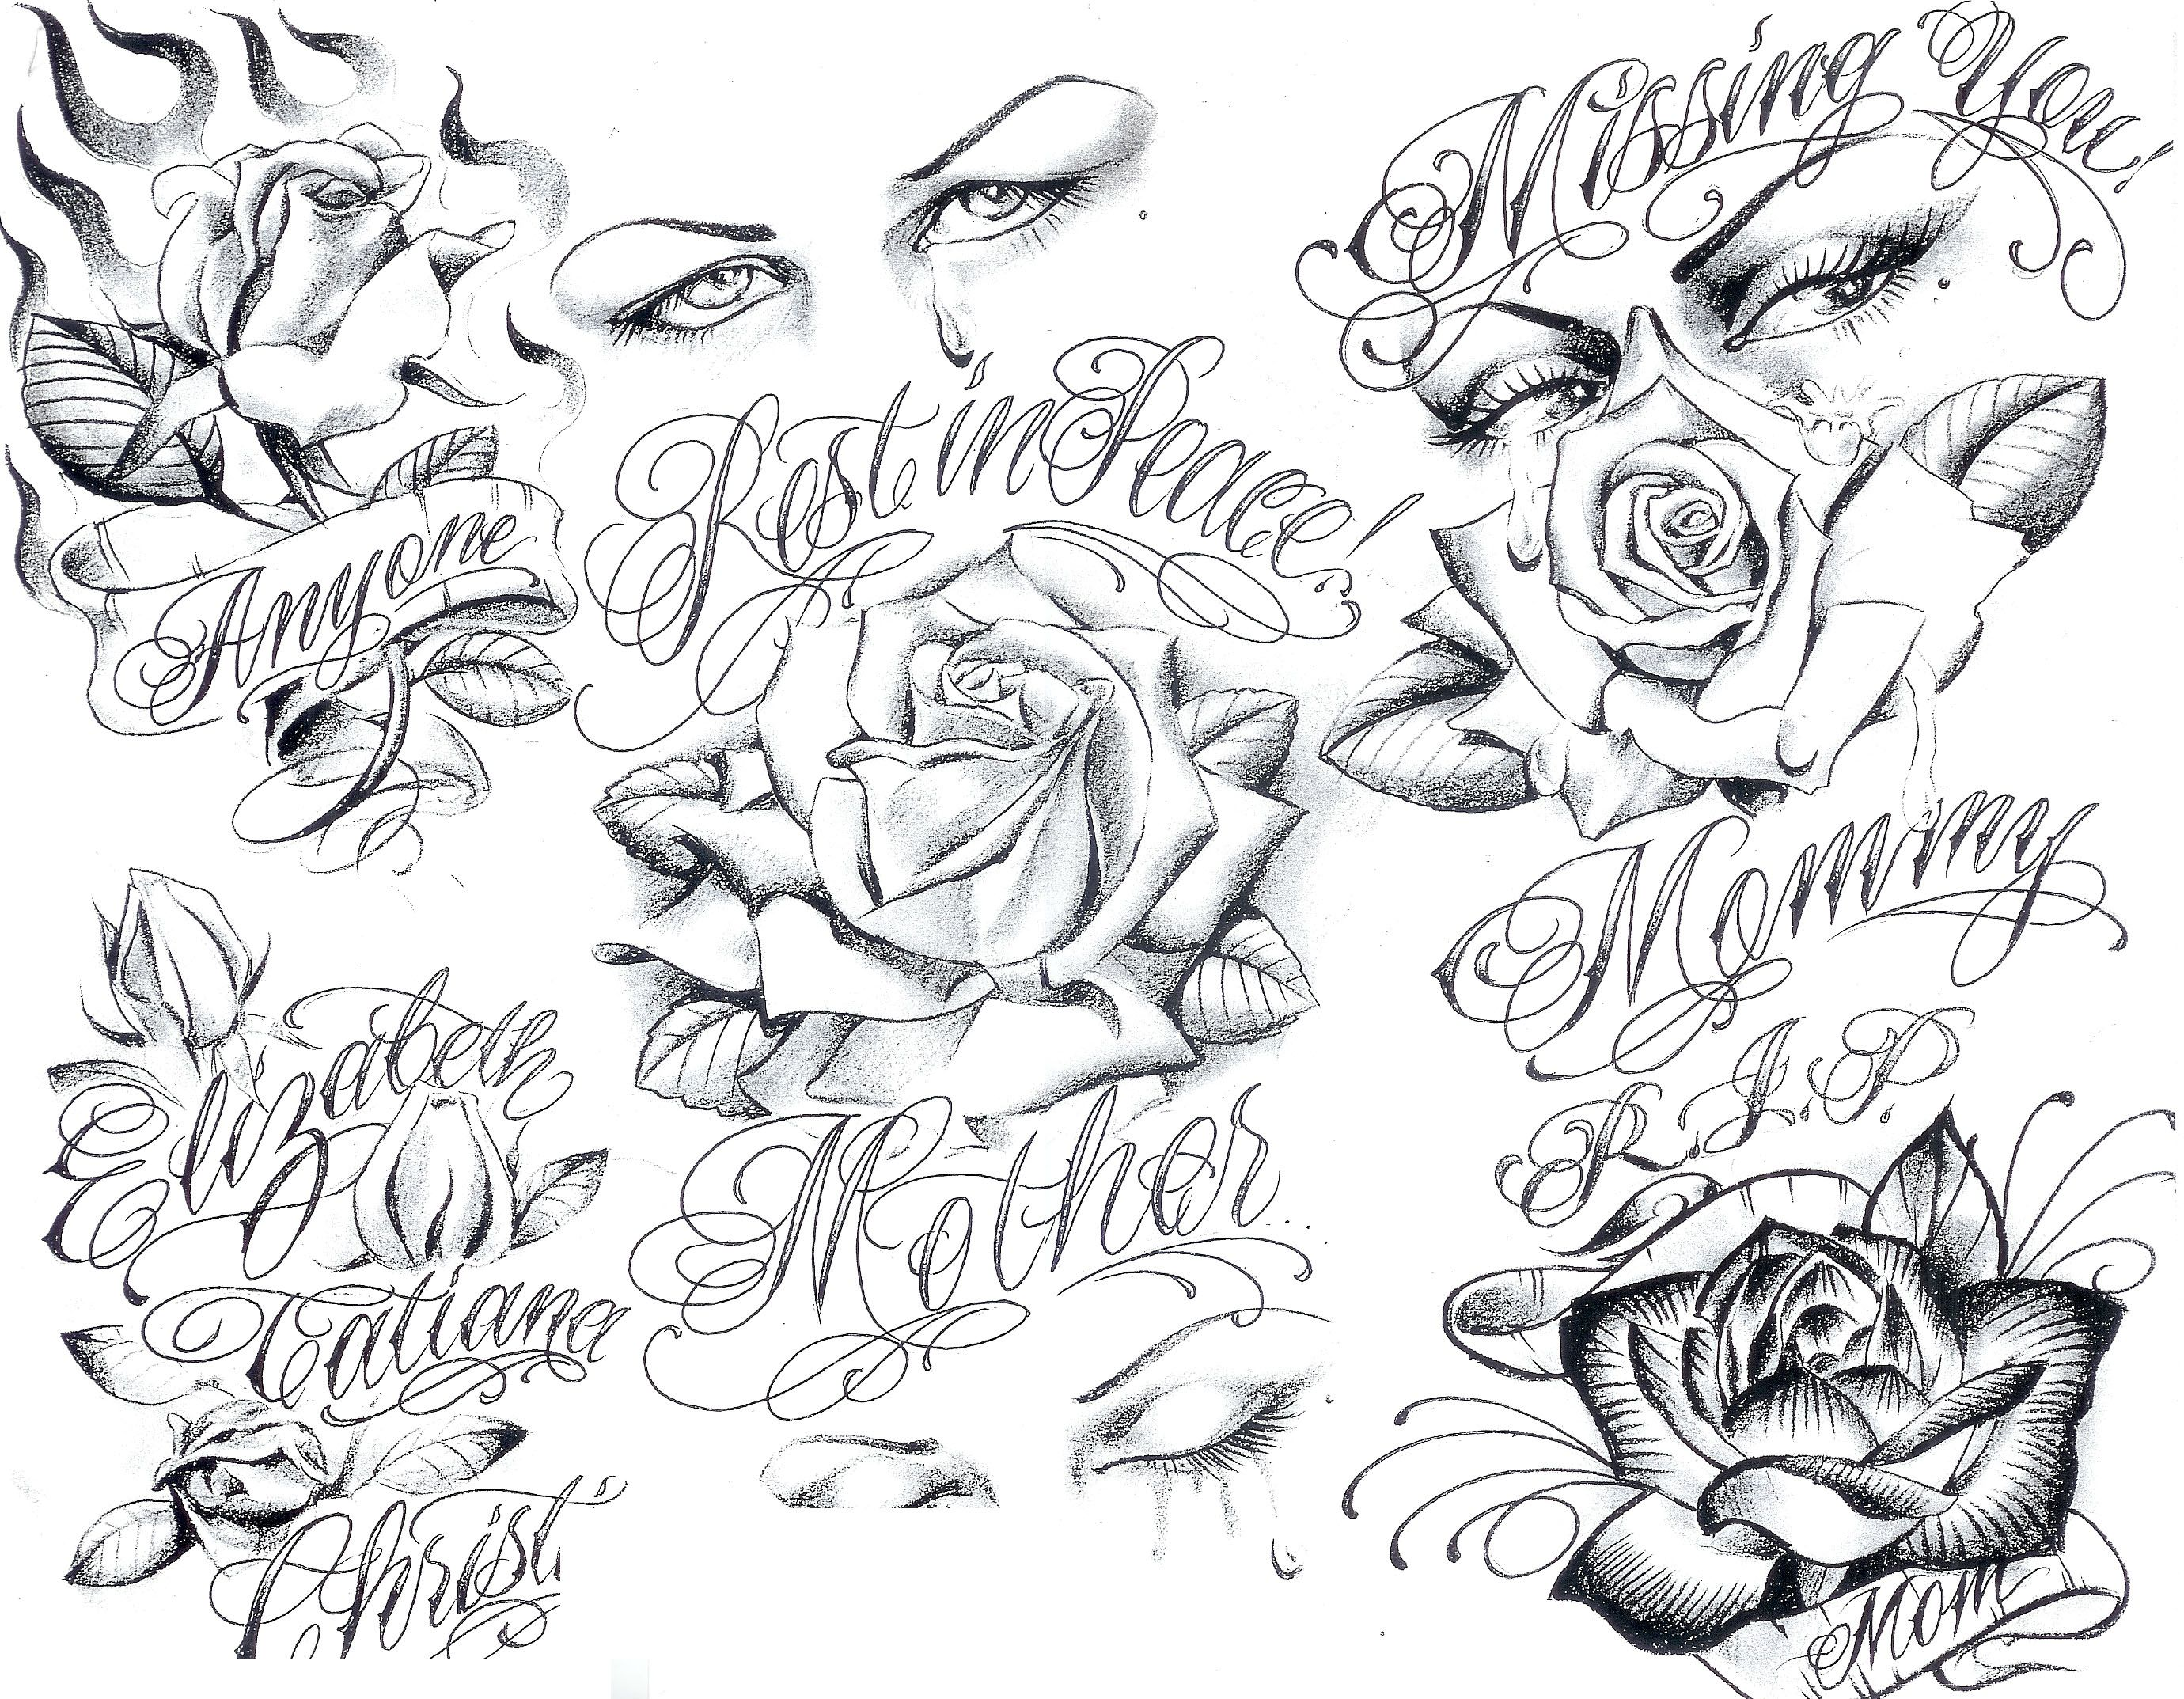 Face tattoos designs and ideas page 7 - Art Gangster Tattoo Designs Tattoo Flash By Boog 191